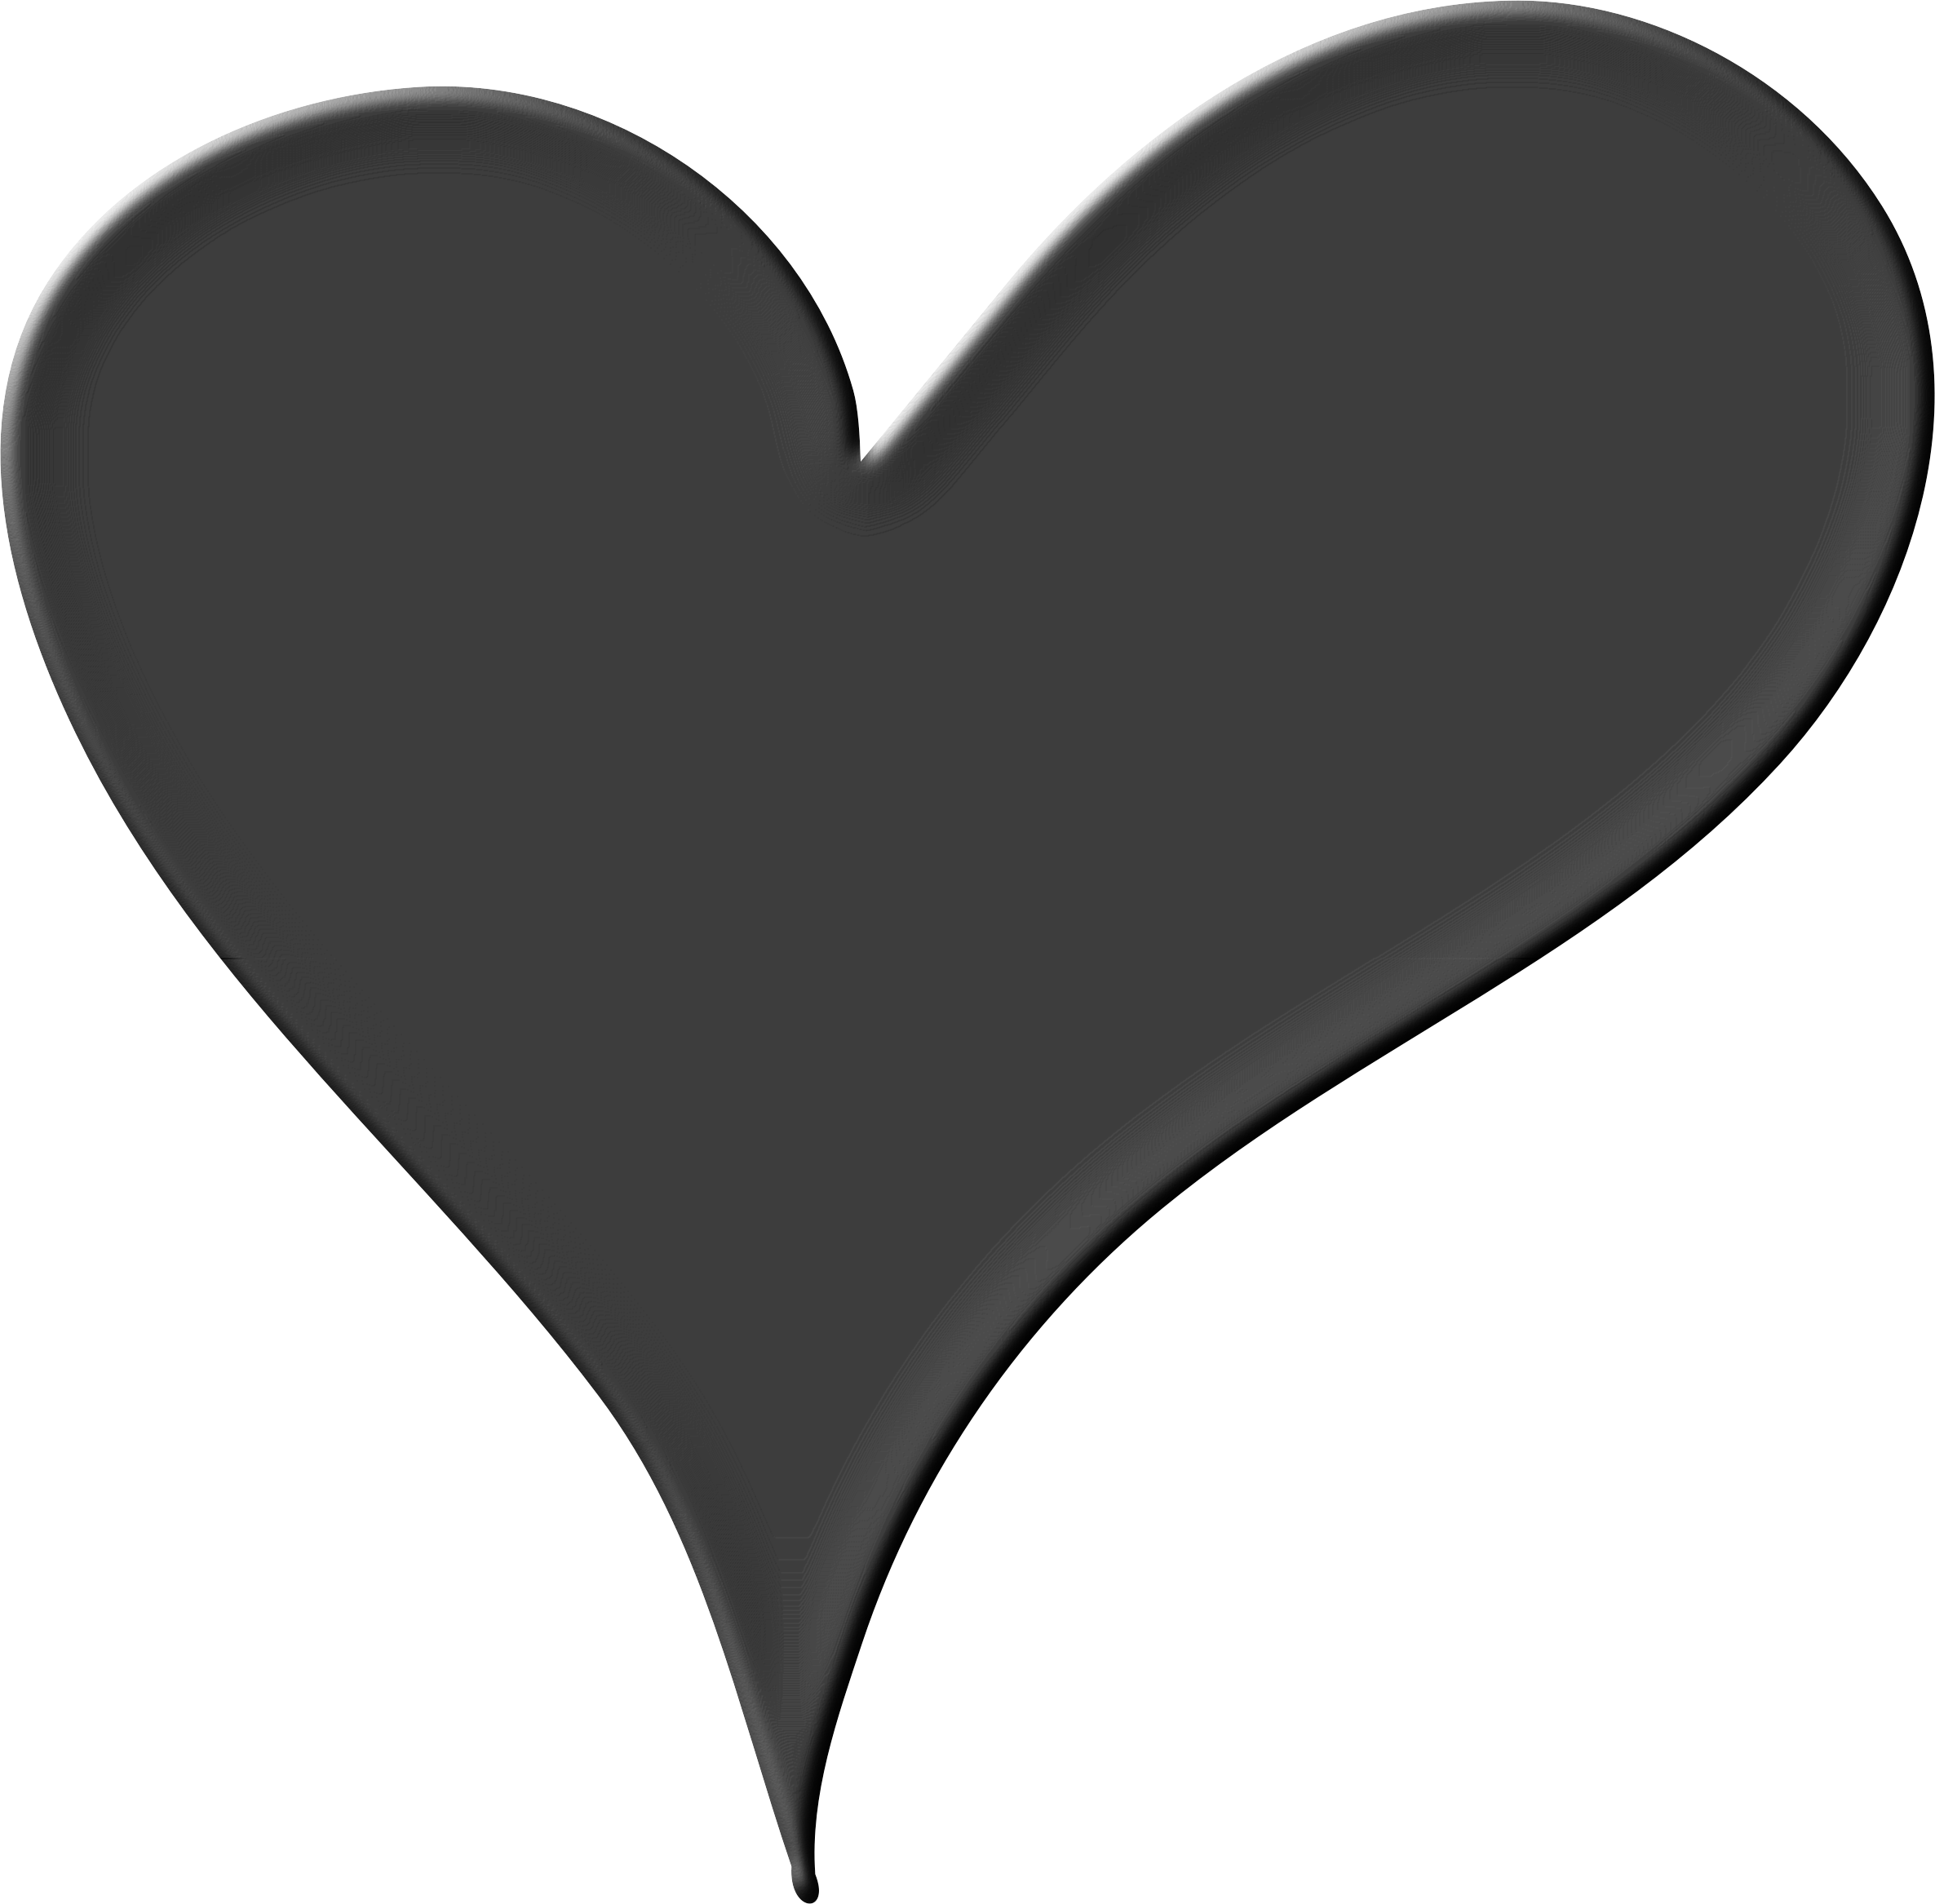 Heart png black. In icons free and